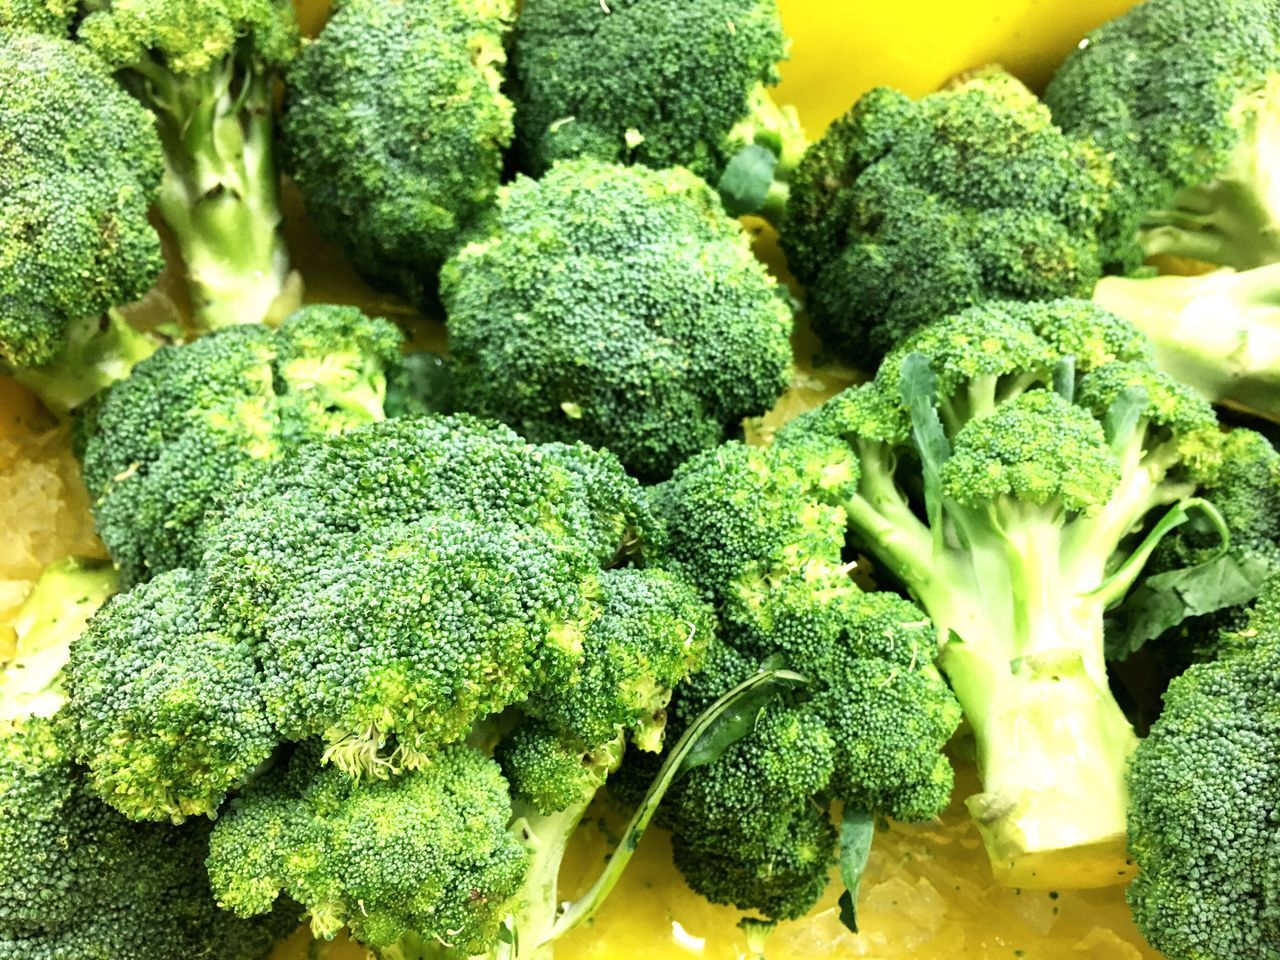 Green broccoli Broccoli Food Food And Drink Healthy Eating Still Life Vegetable Green Color Close-up Freshness No People Kale Indoors  Day Measuring Tape Healthy Lifestyle Healthy Food Healthy Diet Hard Dietfood Diet & Fitness Ready-to-eat Freshness Food And Drink Health